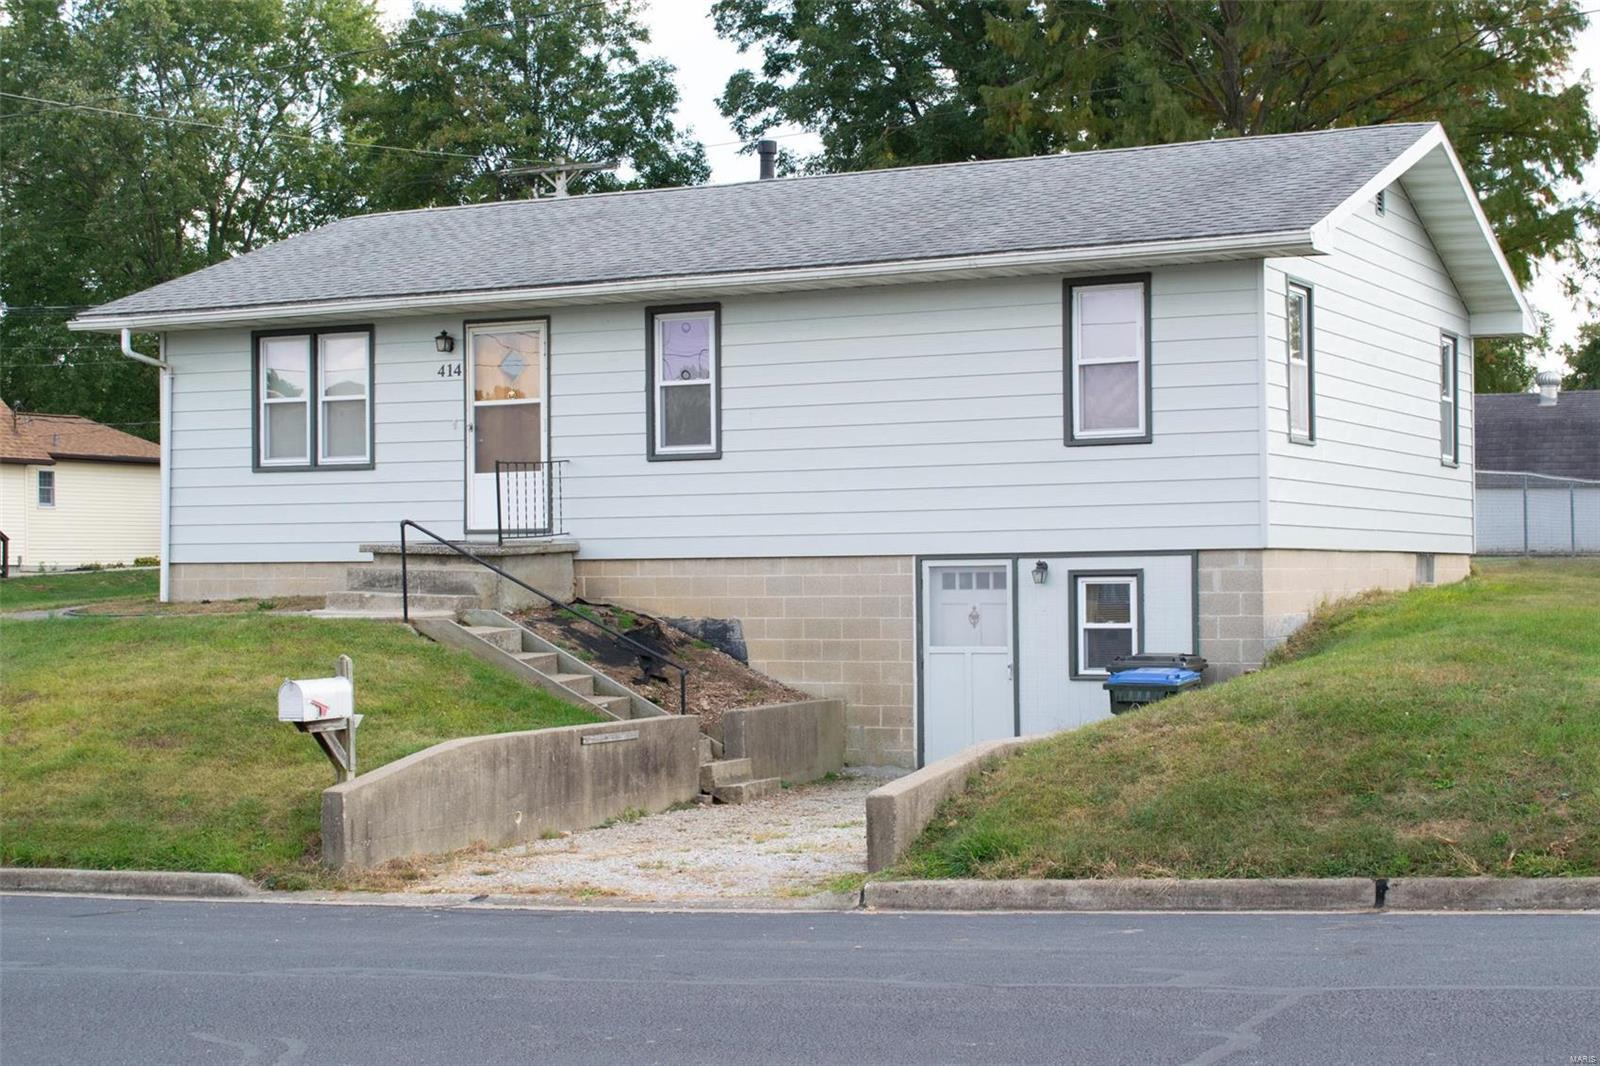 414 W South 4th St Property Photo - Red Bud, IL real estate listing